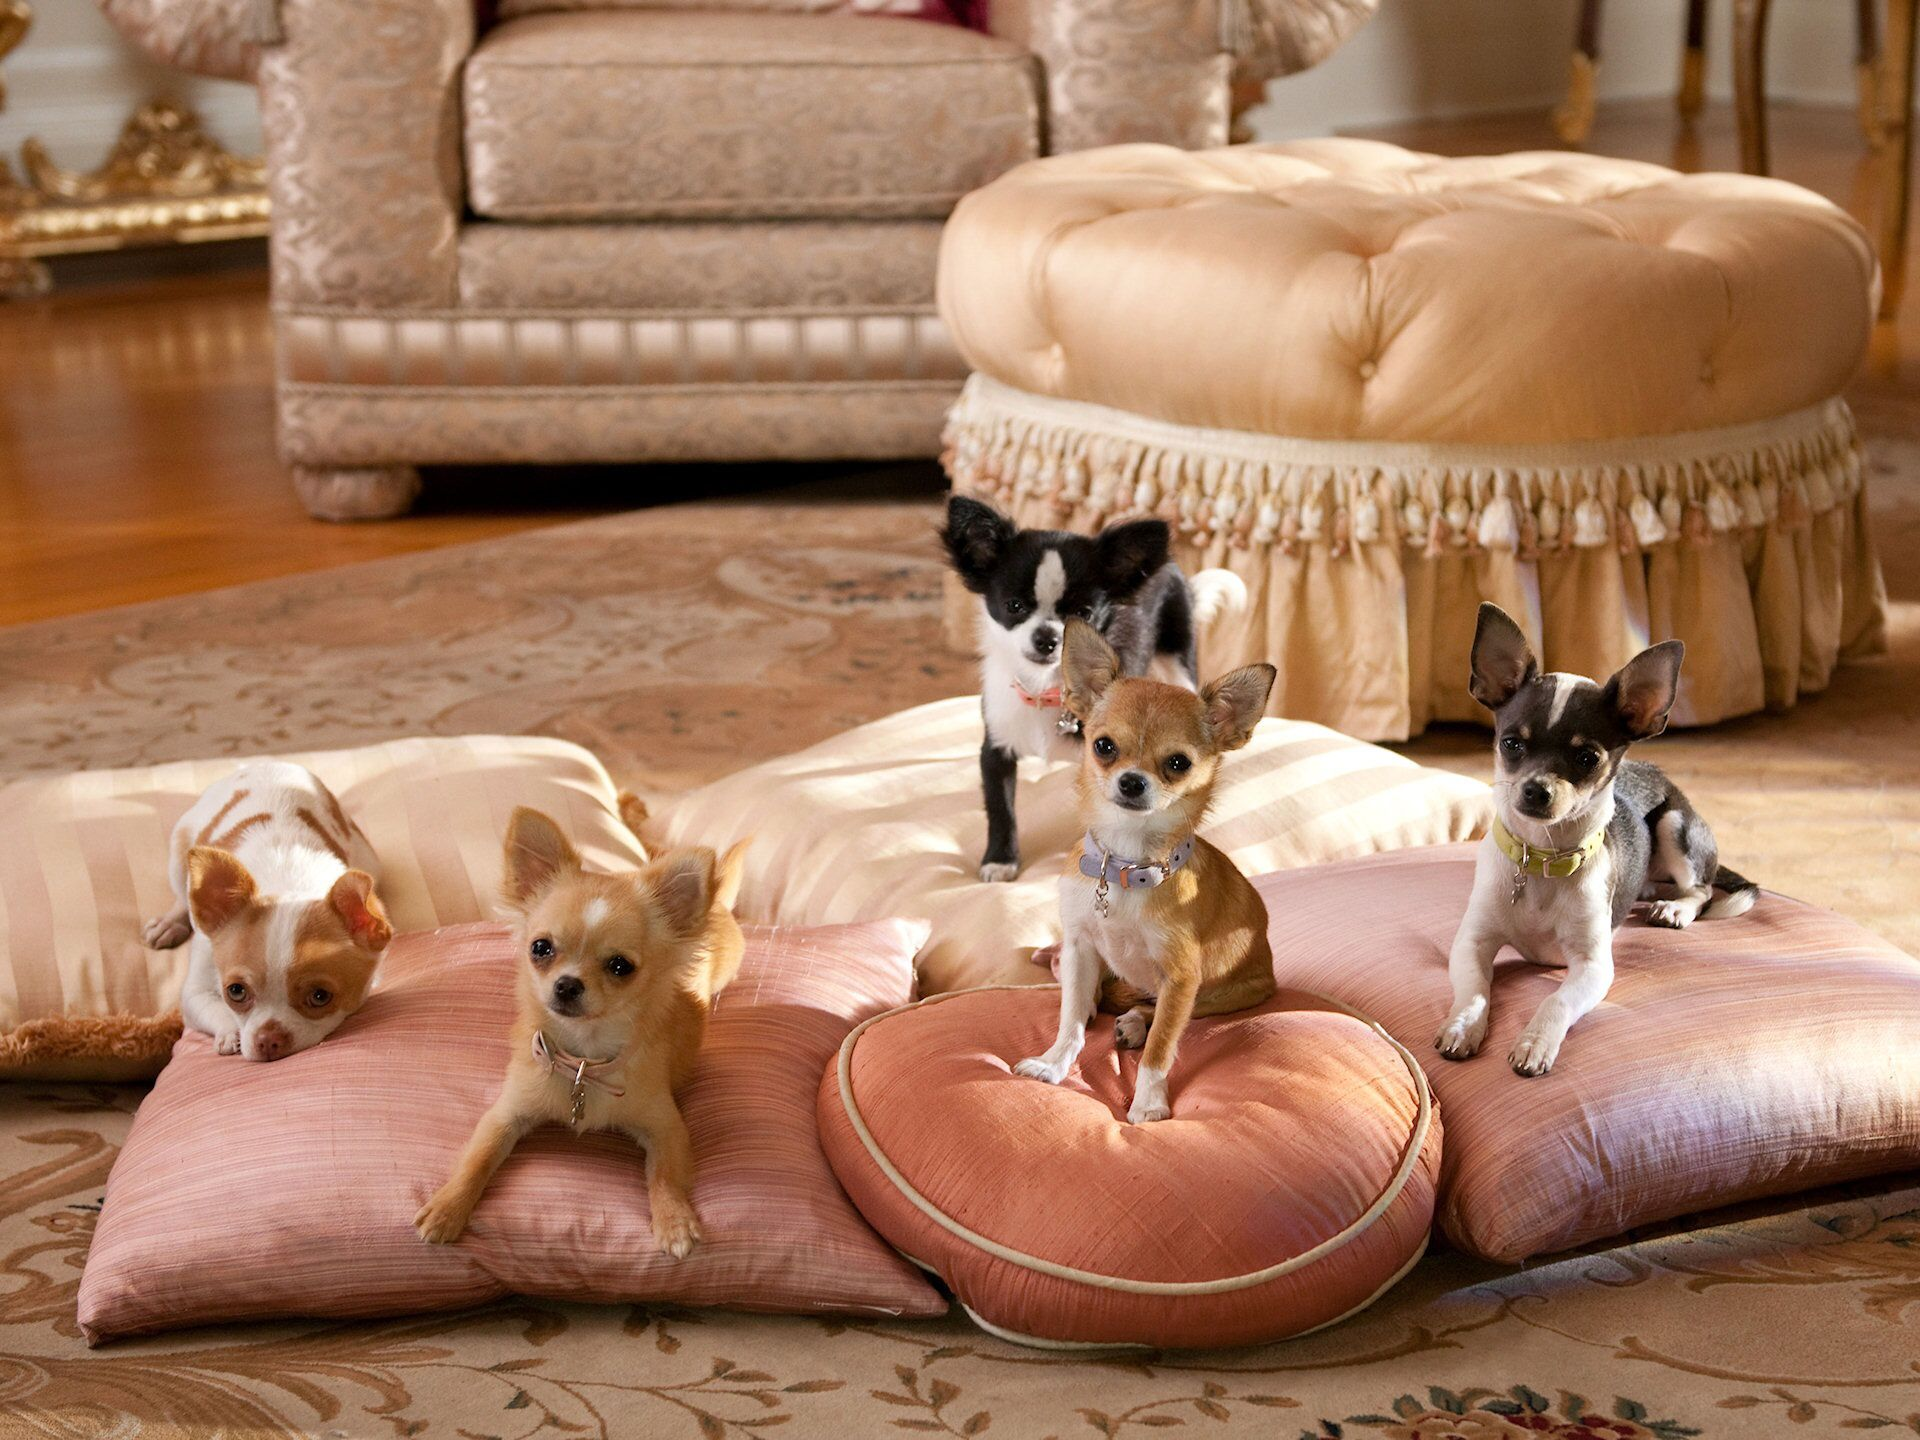 Beverly Hills Chihuahua With Images Chihuahua Puppies Cute